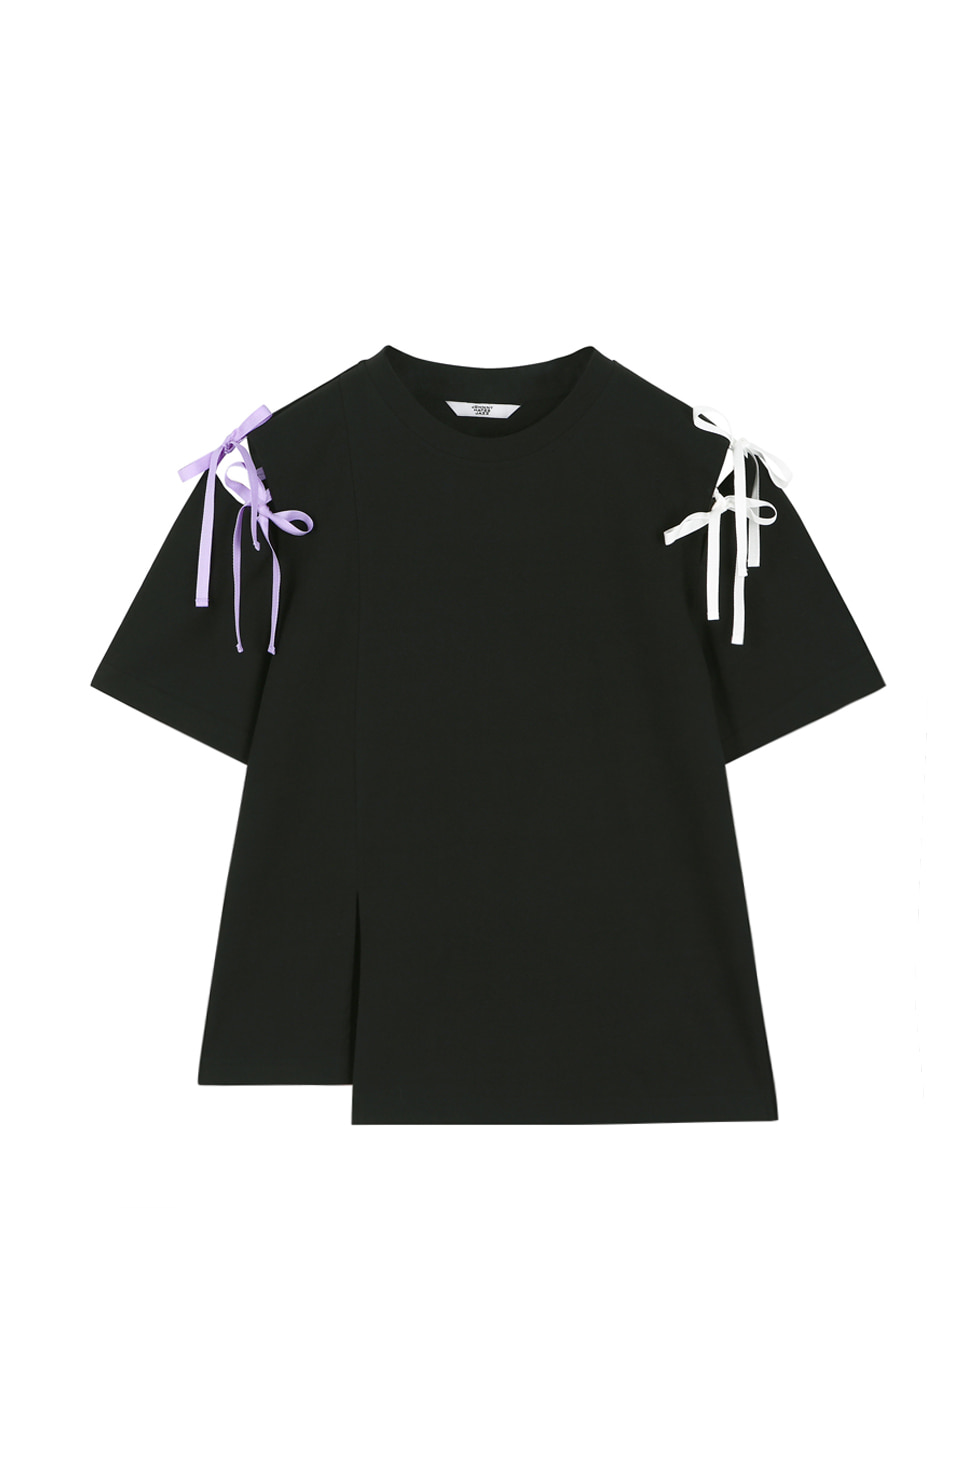 RIBBON TIE T-SHIRTS - BLACK